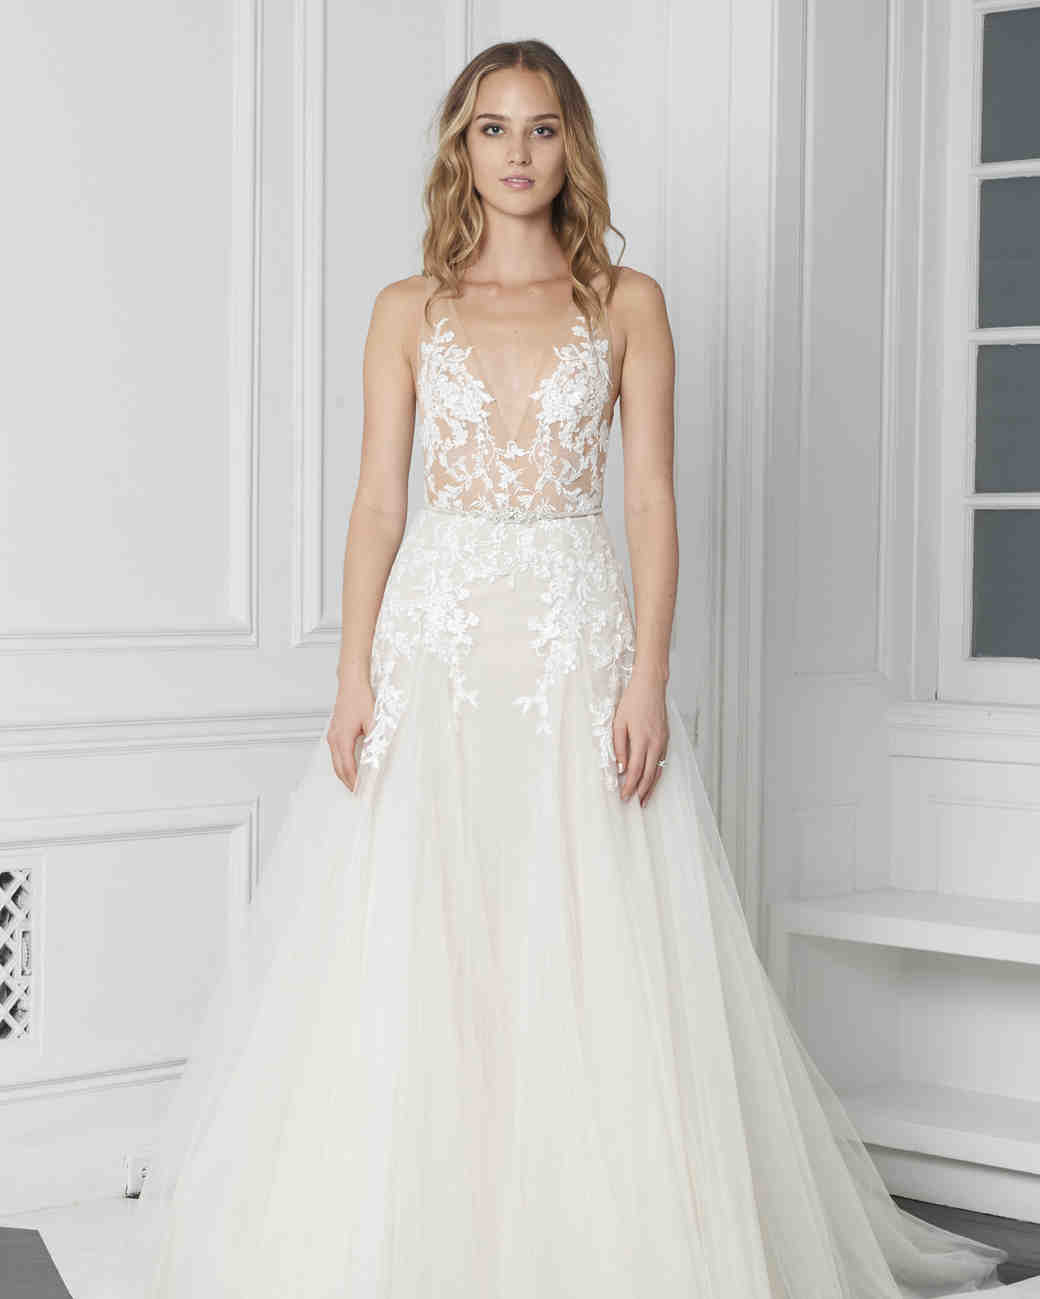 20231de274c1b4 Monique Lhuillier Bliss Fall 2018 Embroidered A-Line Wedding Dress with  V-Neckline